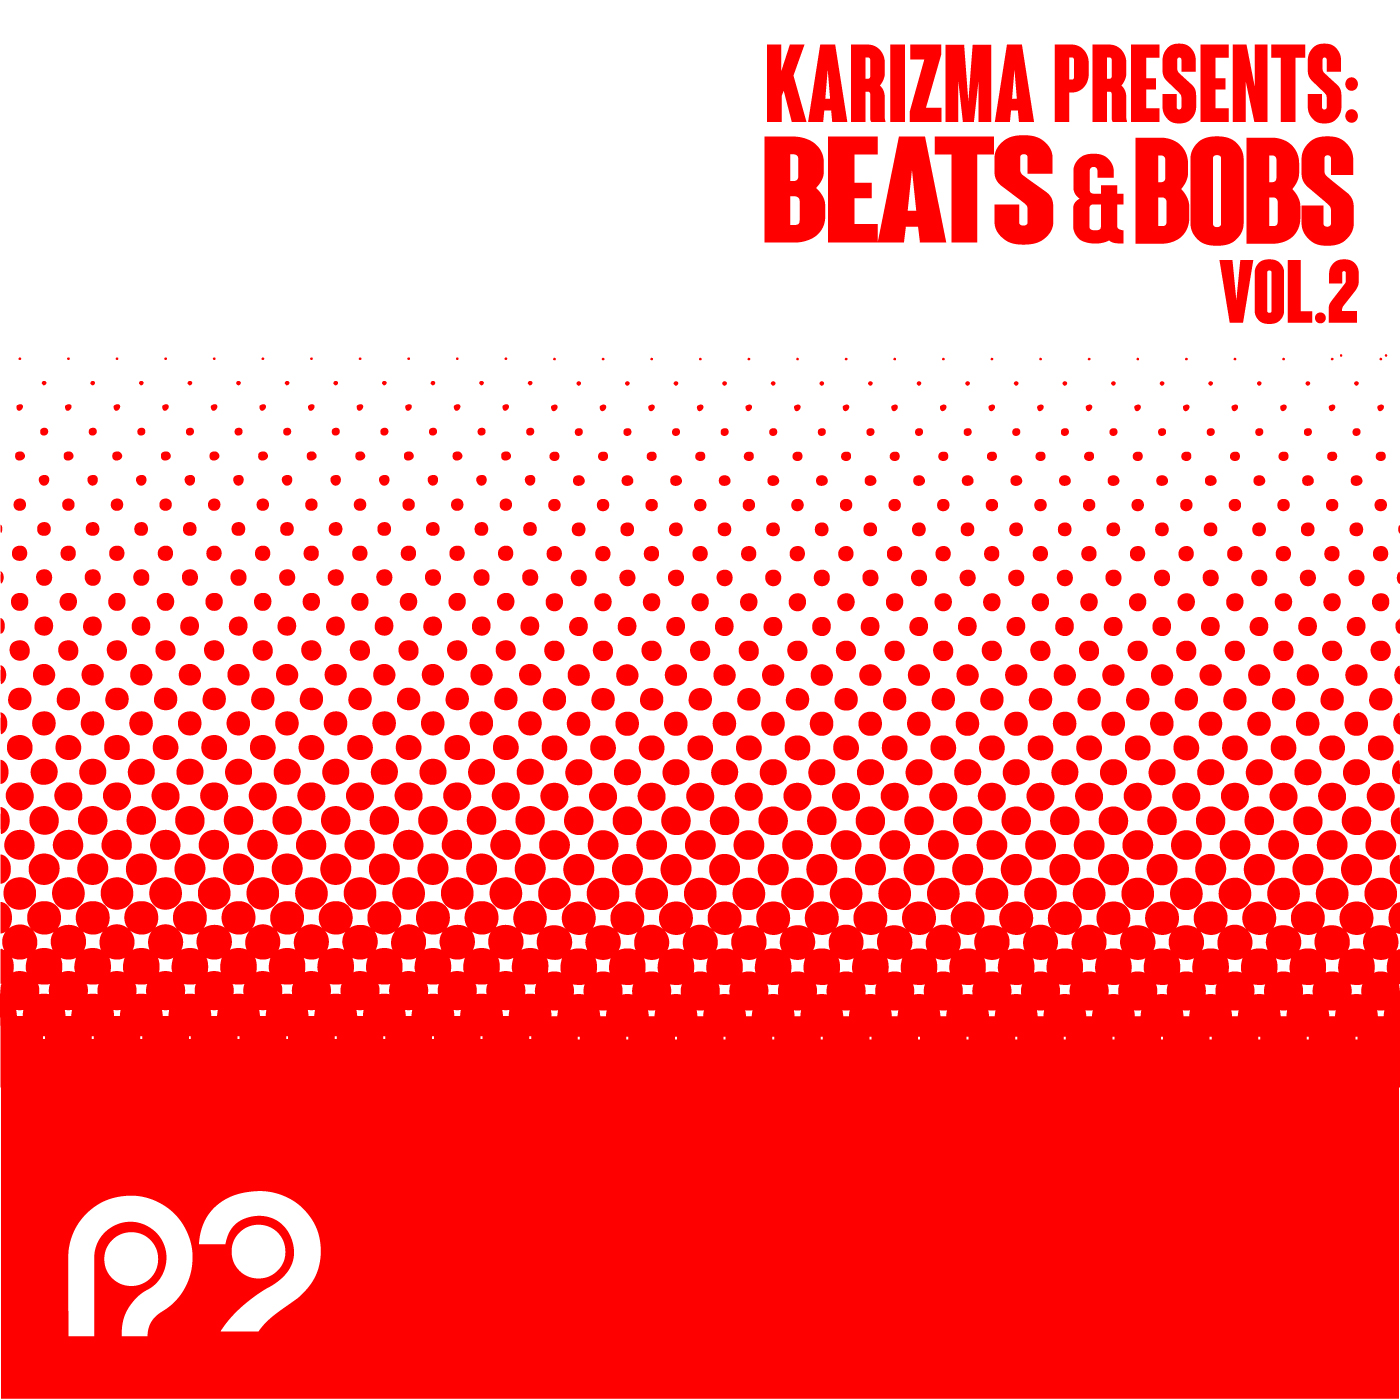 KARIZMA Earth These Beats Beats & Bobs V.2